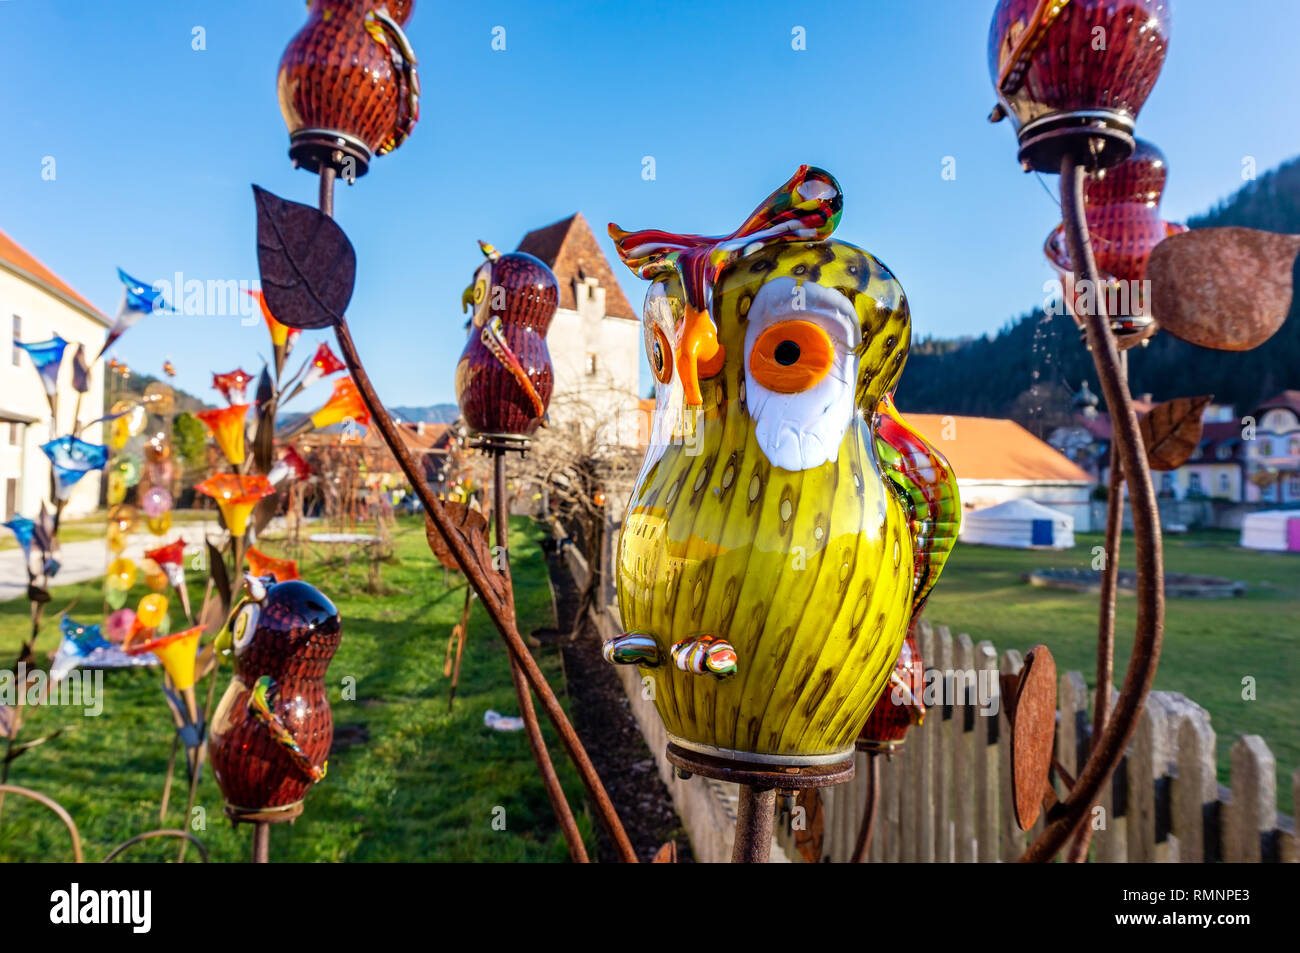 Neuberg an der Murz , Austria - 15.11.2018: Glass manufature Kaiserhof Glass worker manufacture with colorful glassware outside garden glass factory w - Stock Image